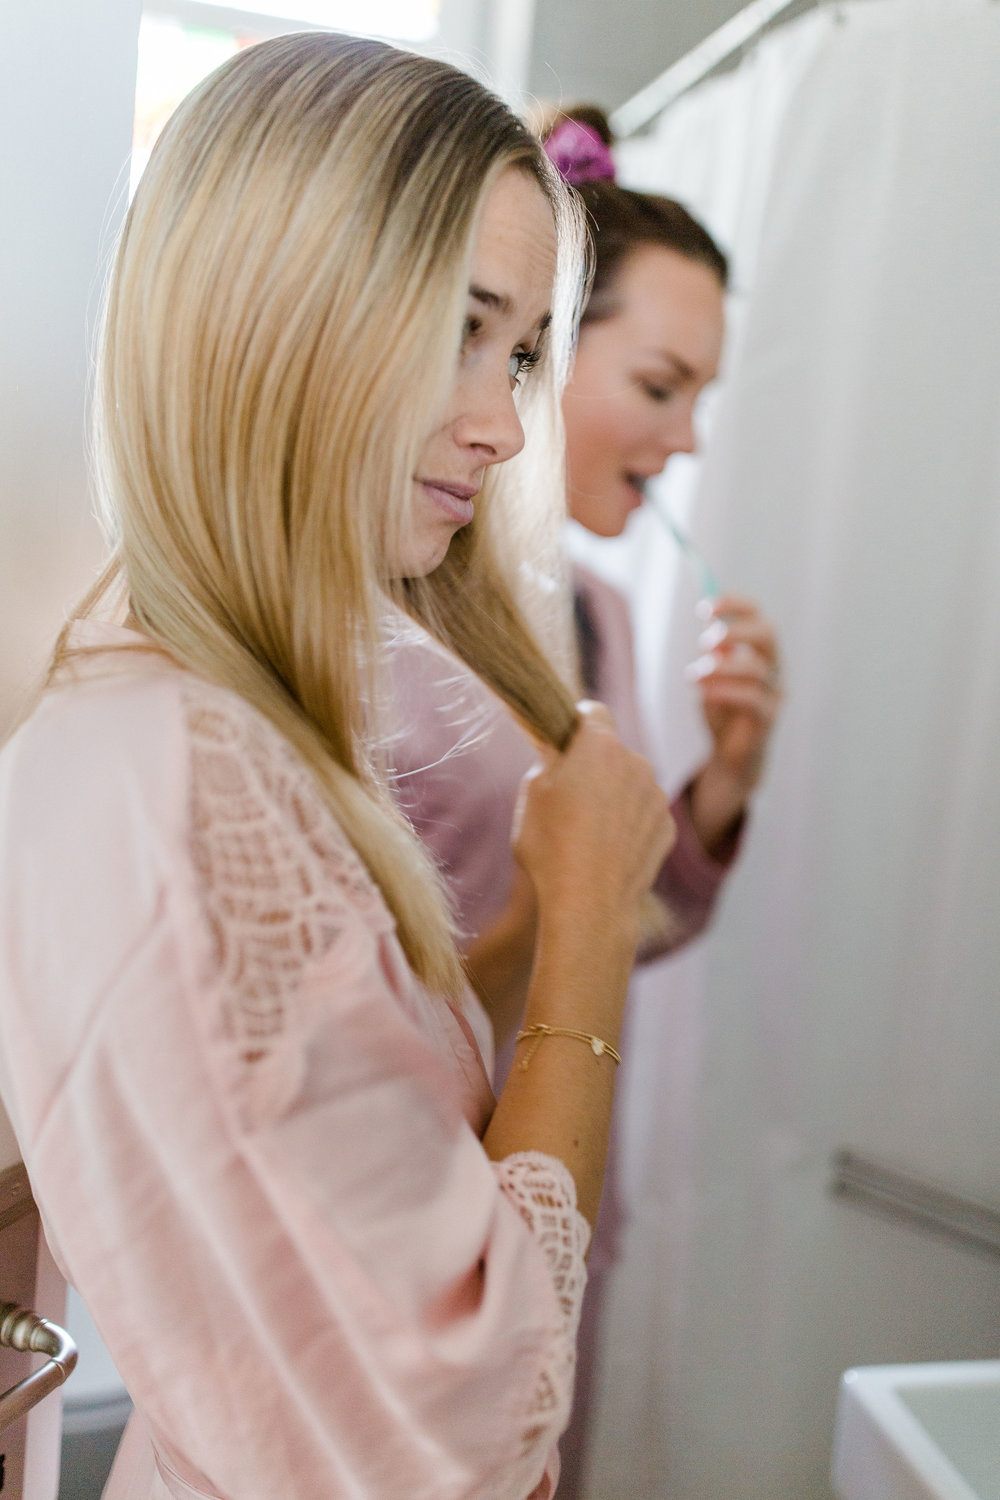 My luxury linen two girls in bathroom getting ready for evening